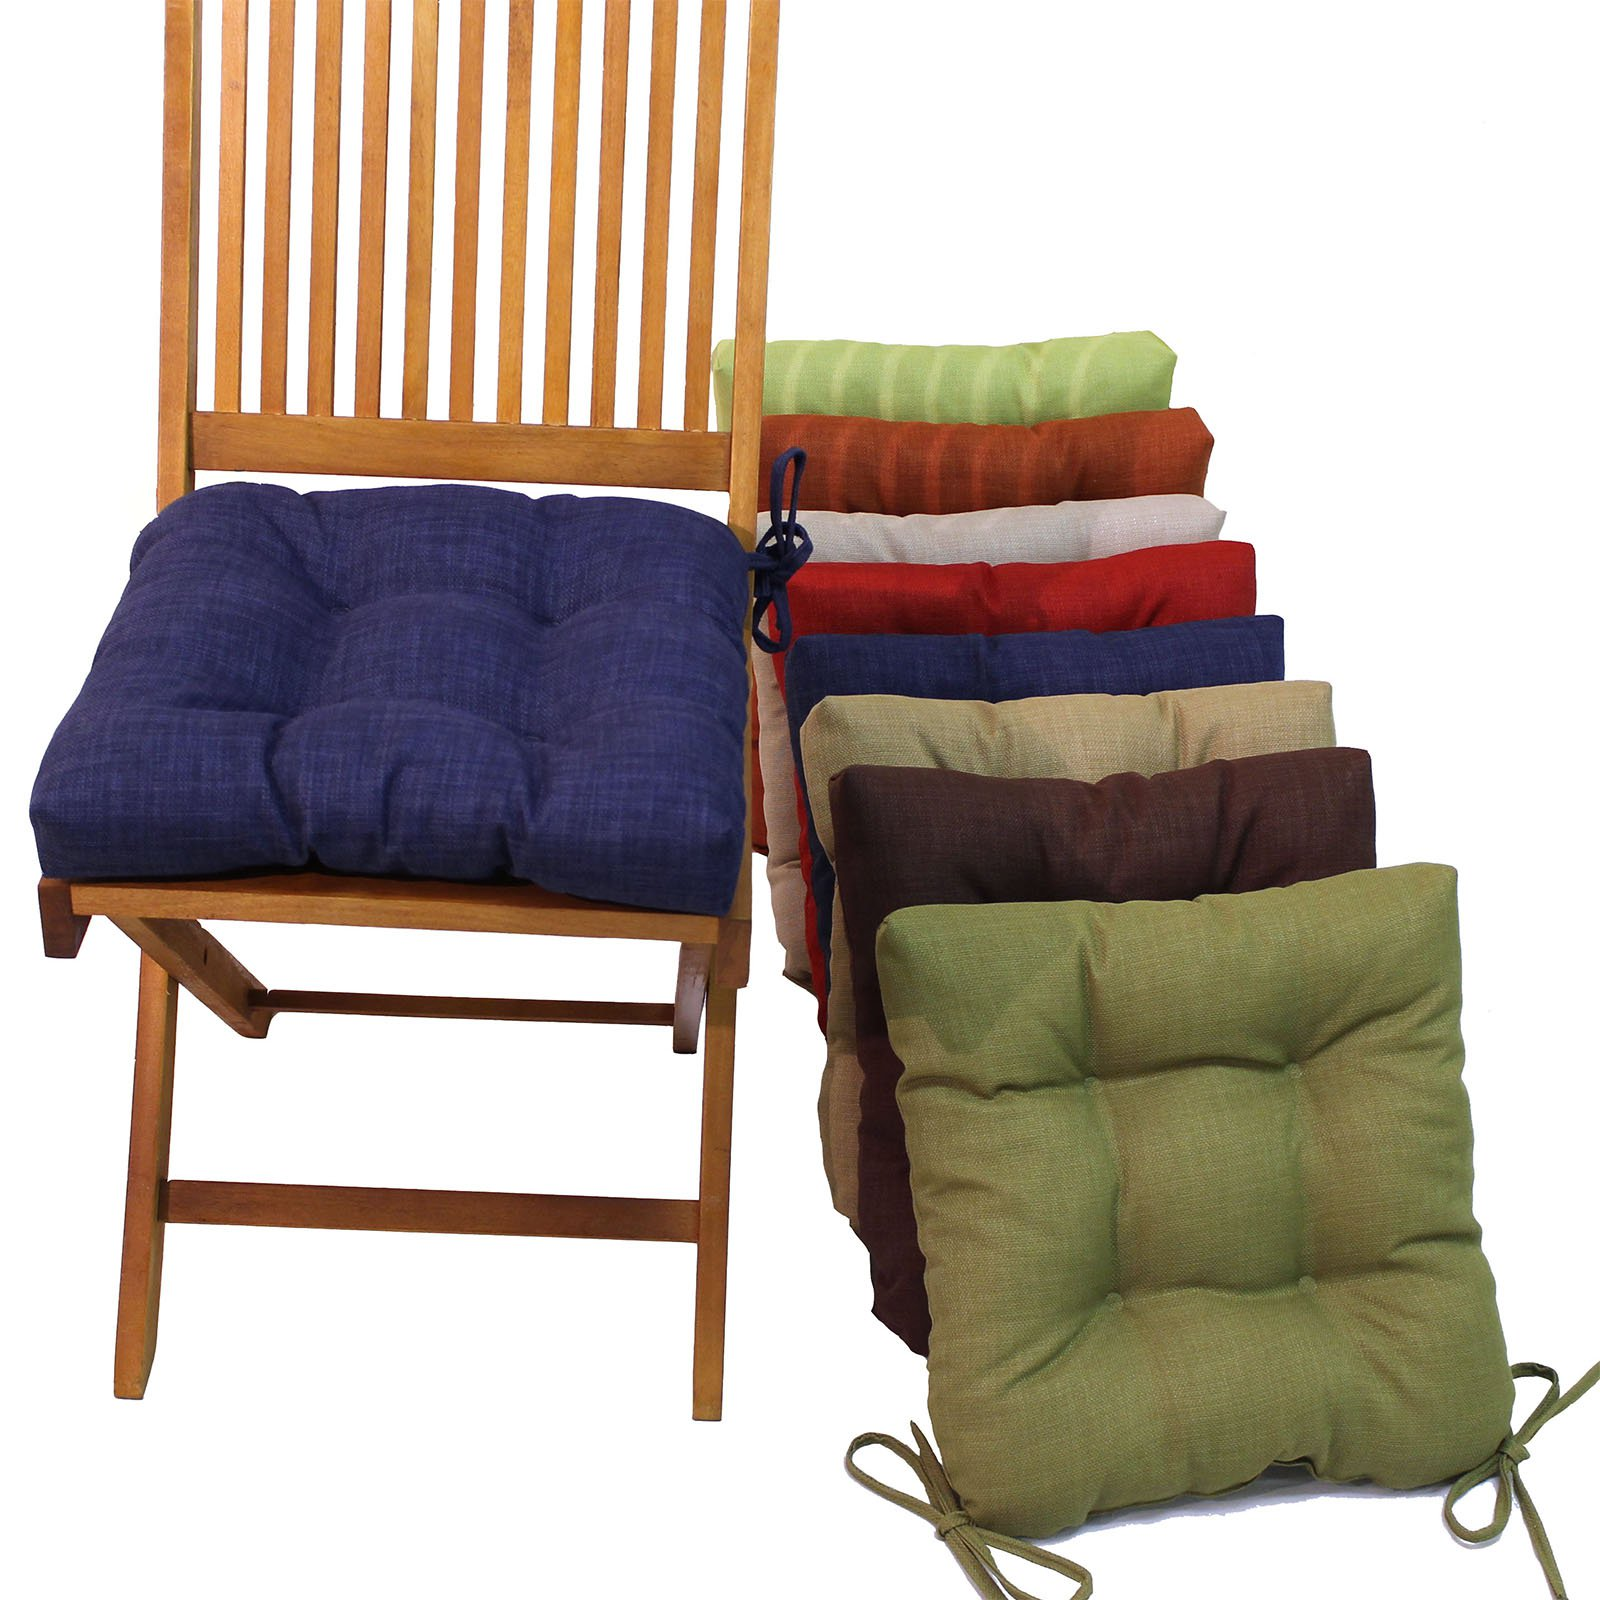 blazing needles 16 in square outdoor chair cushions with ties